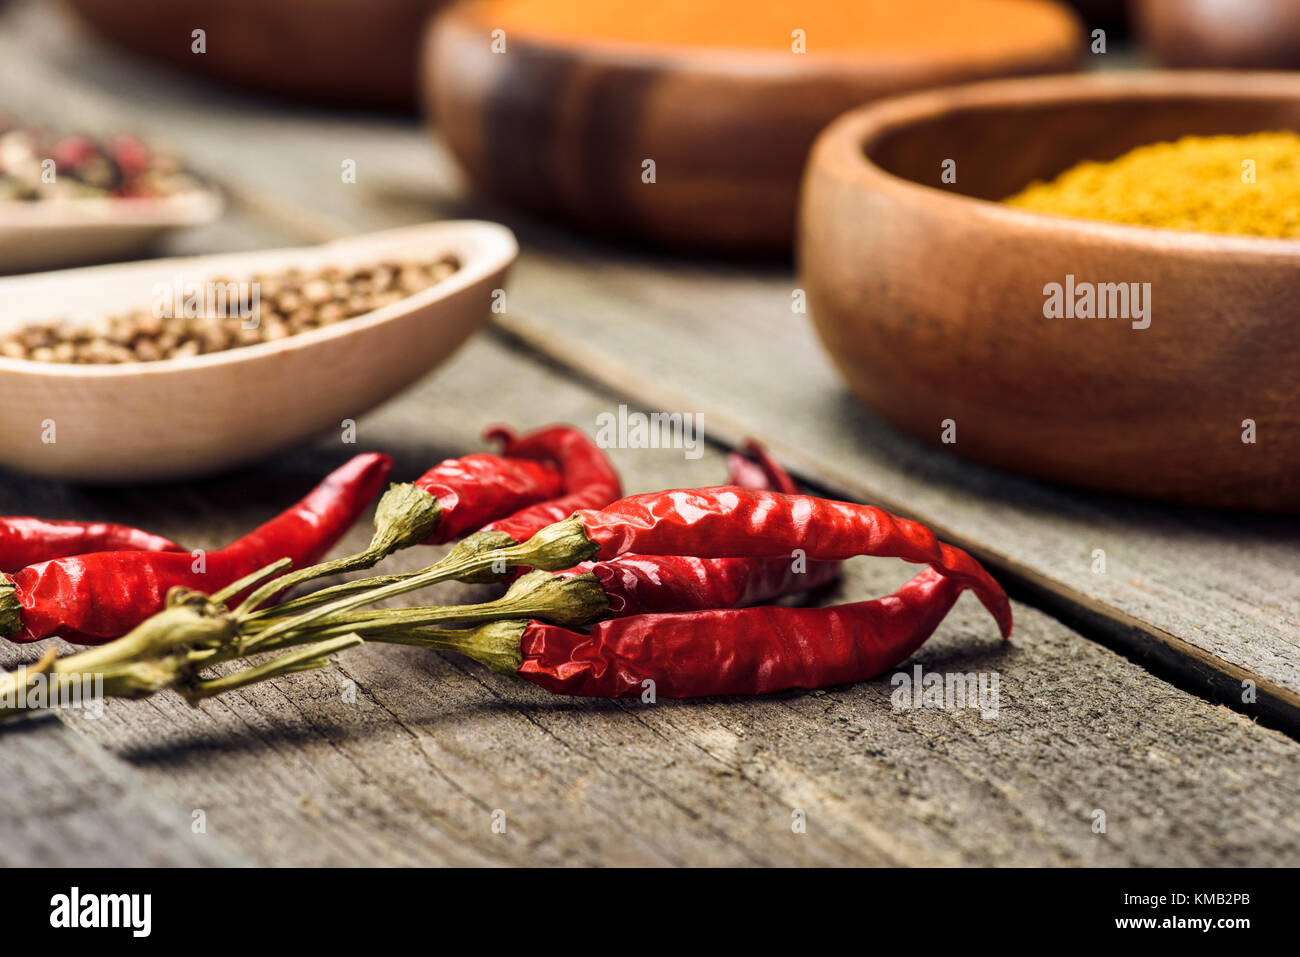 Chili Peppers Photo Stock